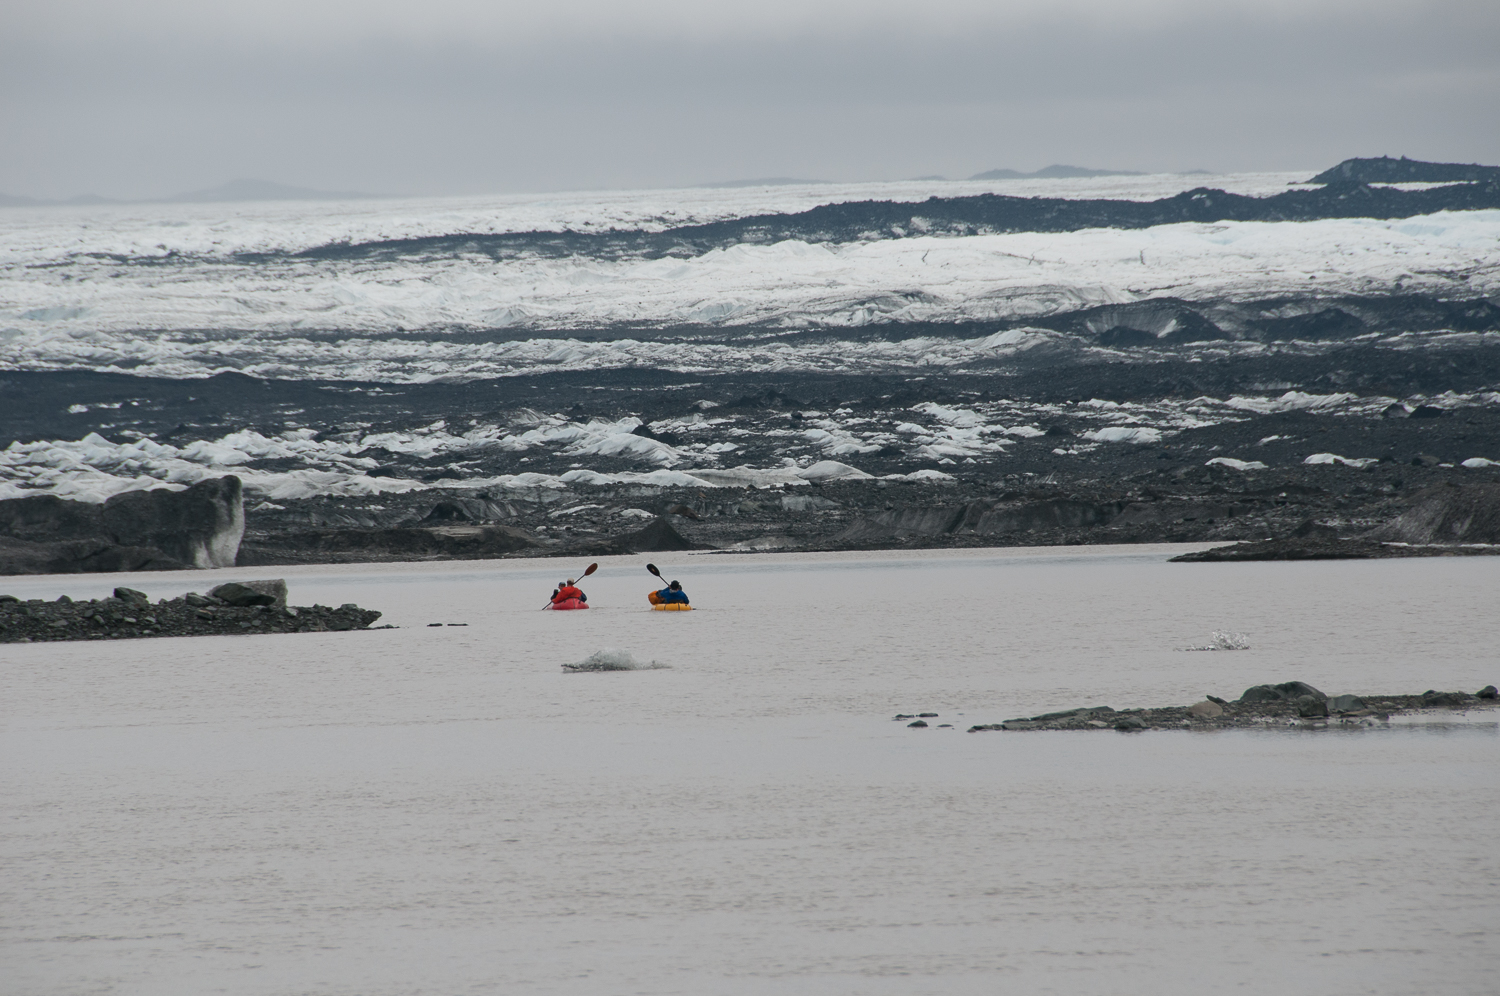 Using Packrafts to Ferry Gear Across Lagoon to Malaspina Glacier